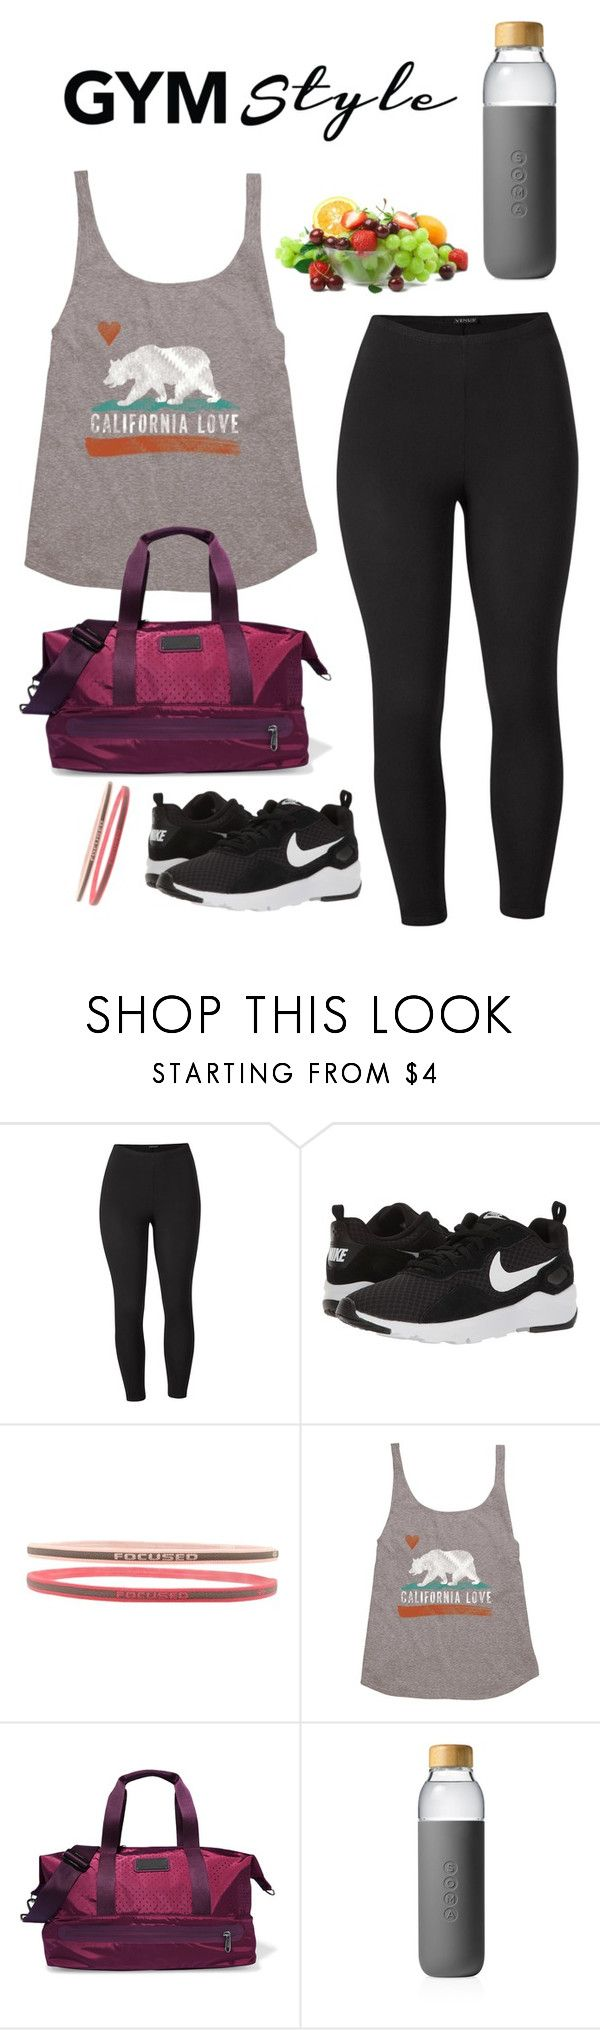 """""""cardio workout"""" by queen-amadalek ❤ liked on Polyvore featuring Venus, NIKE, Forever 21, Billabong, adidas, Soma and plus size clothing"""